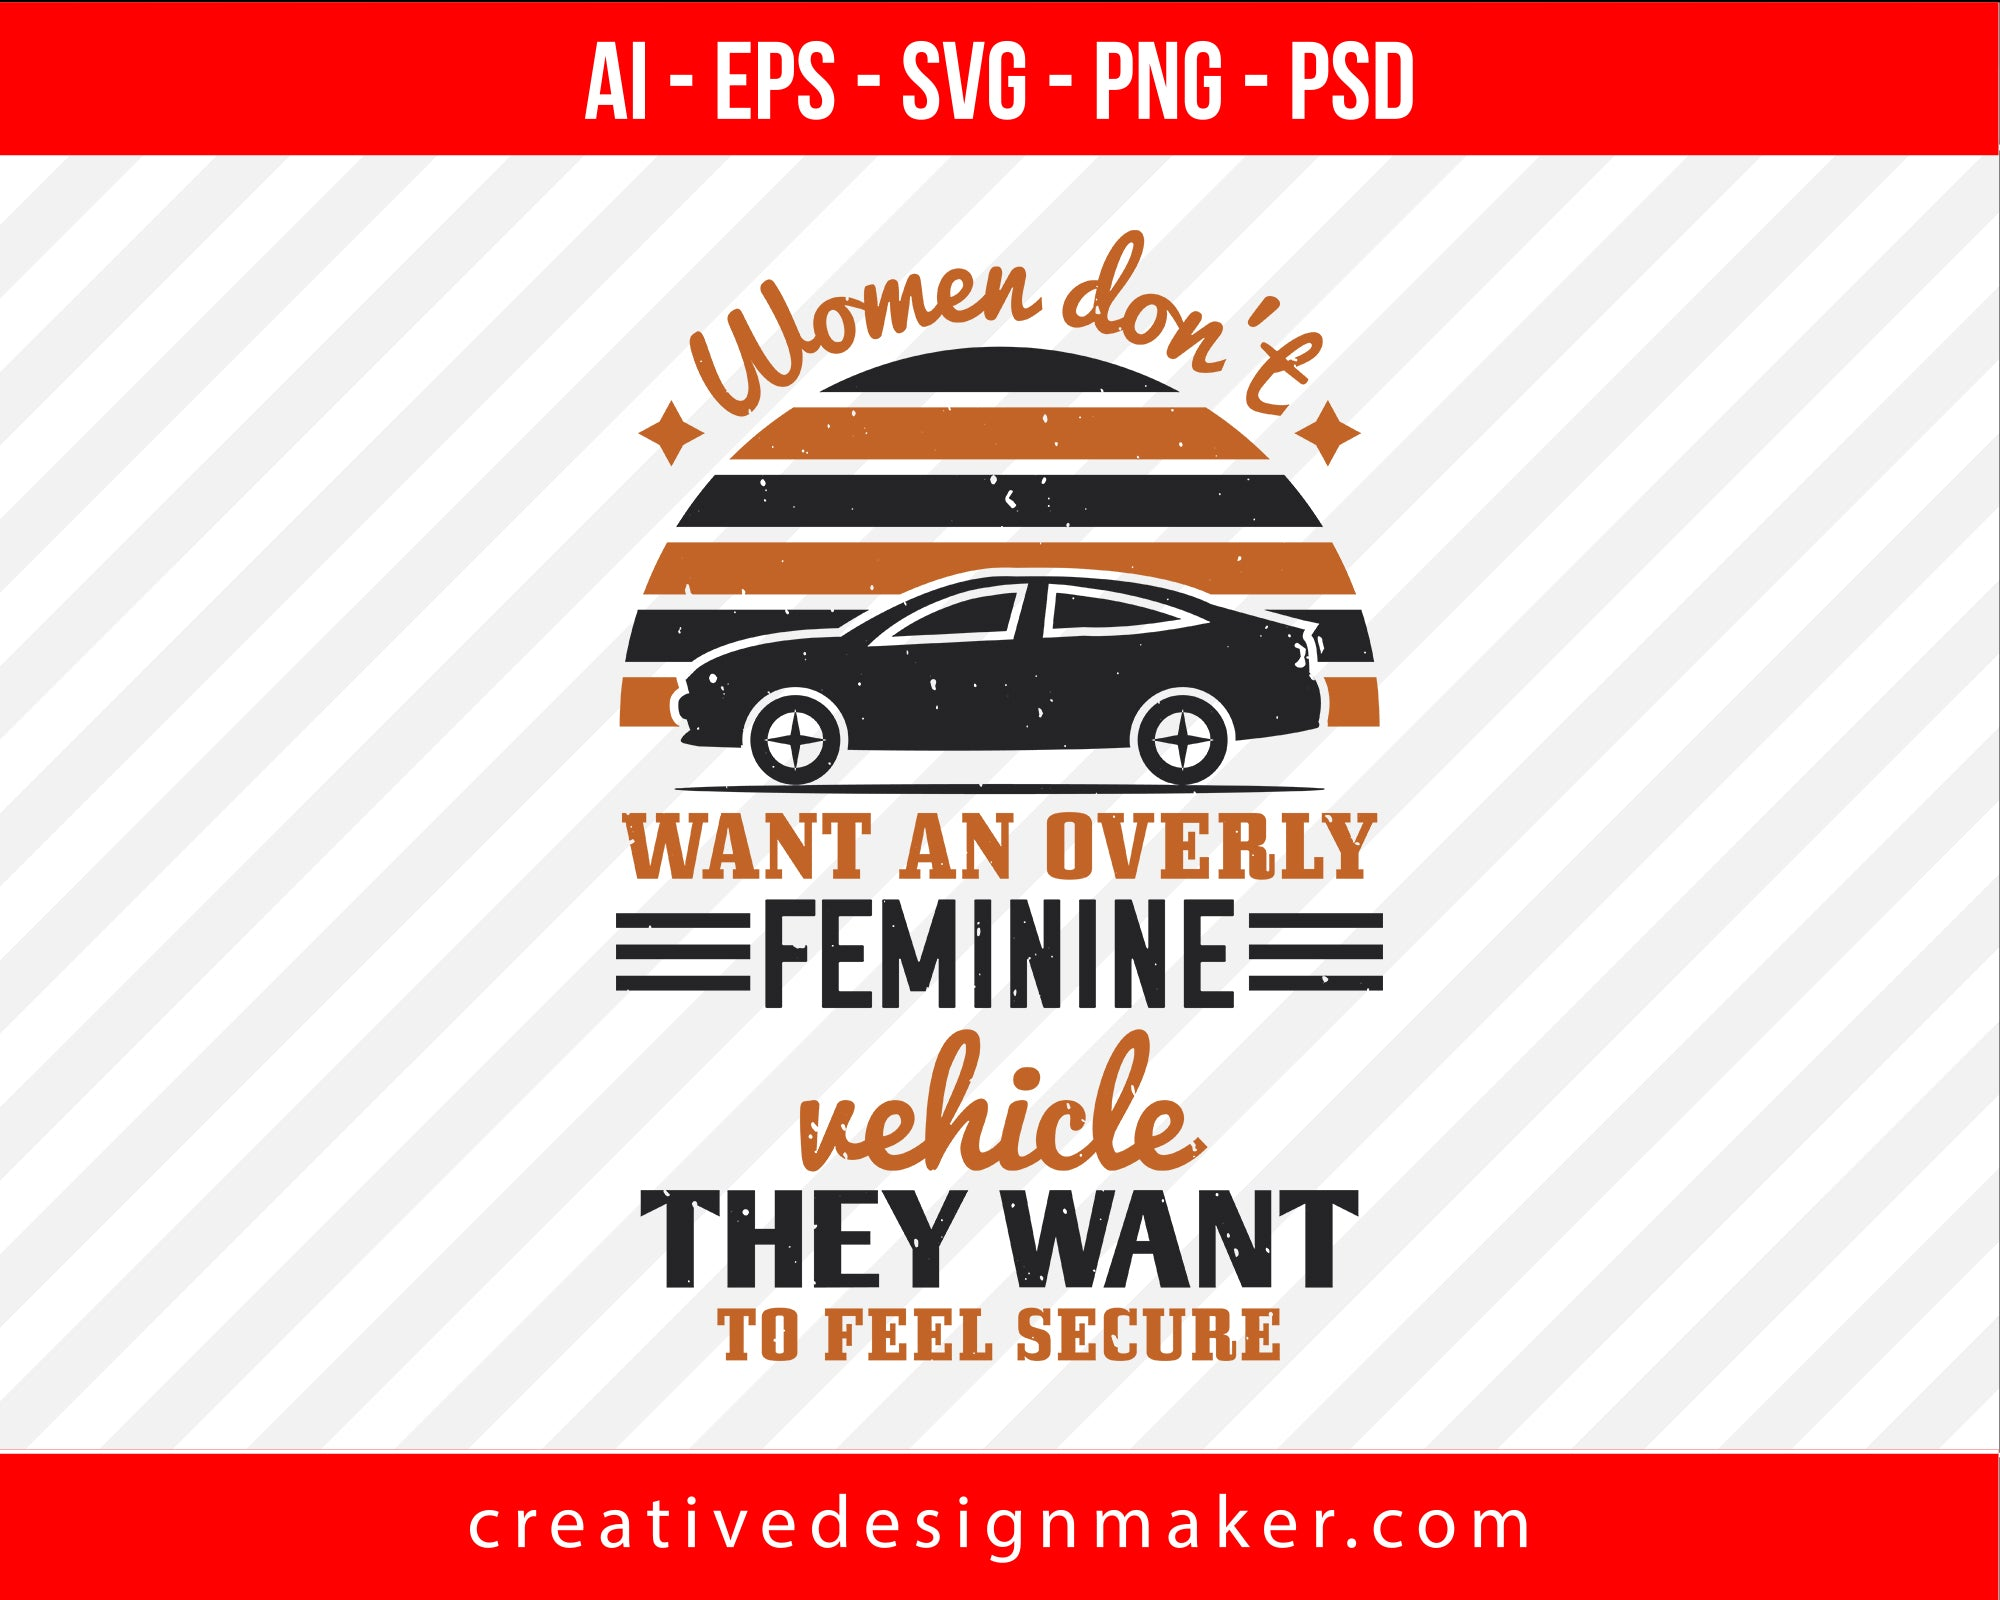 Women don't want an overly feminine vehicle - they want to feel secure Print Ready Editable T-Shirt SVG Design!